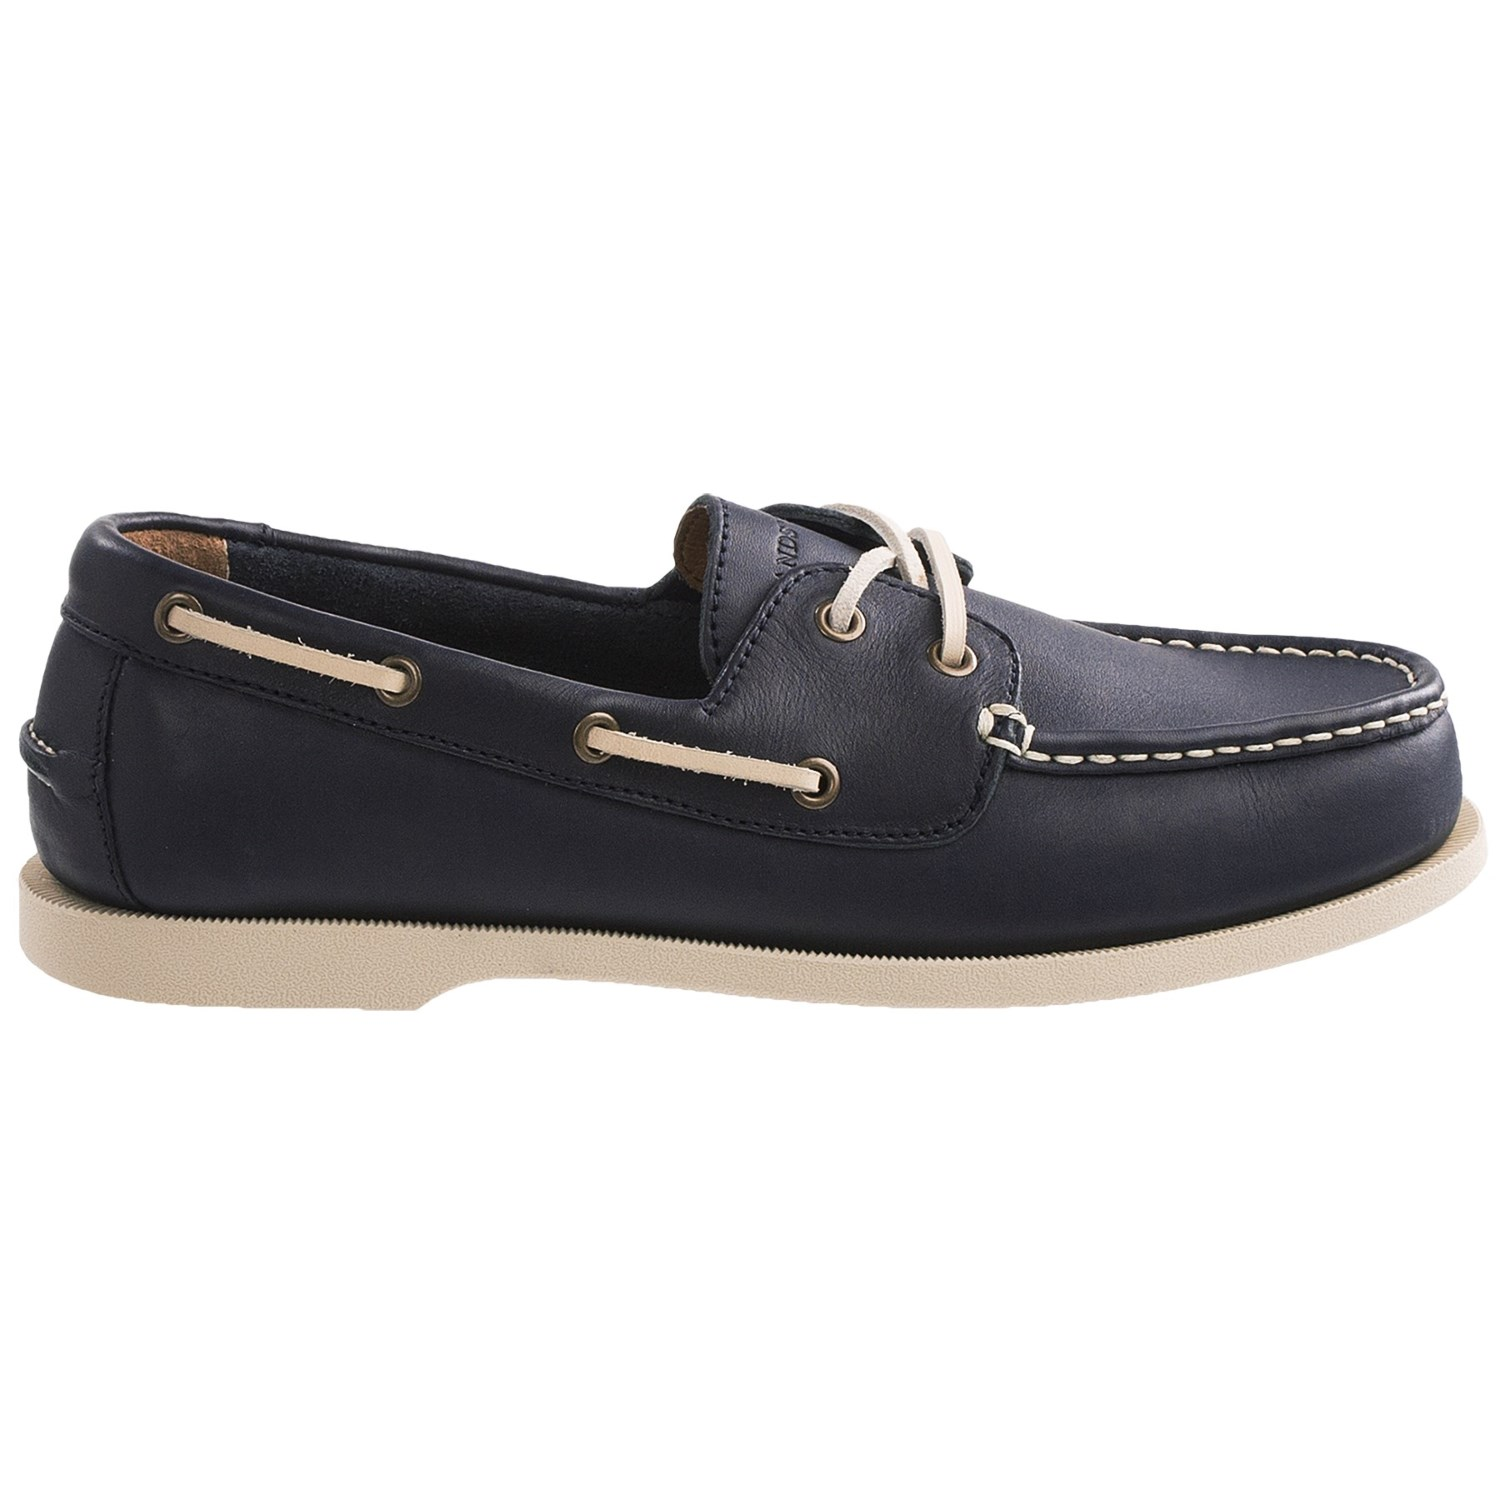 lands end mainstay boat shoes for 7537g